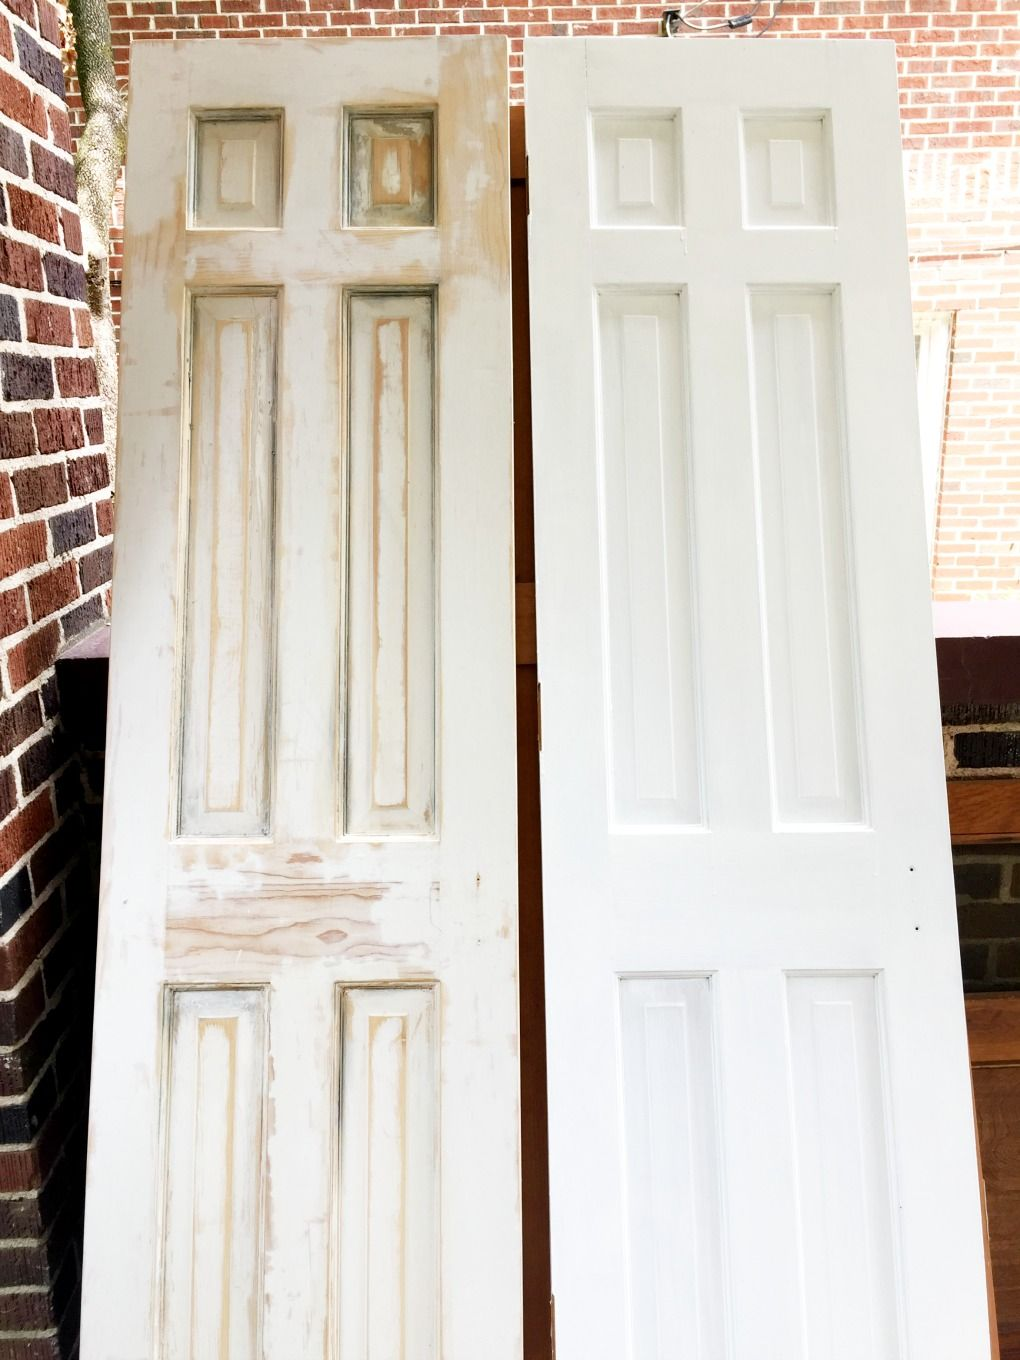 How To Strip Paint Off Wood Doors Stripped Door On Left Compared